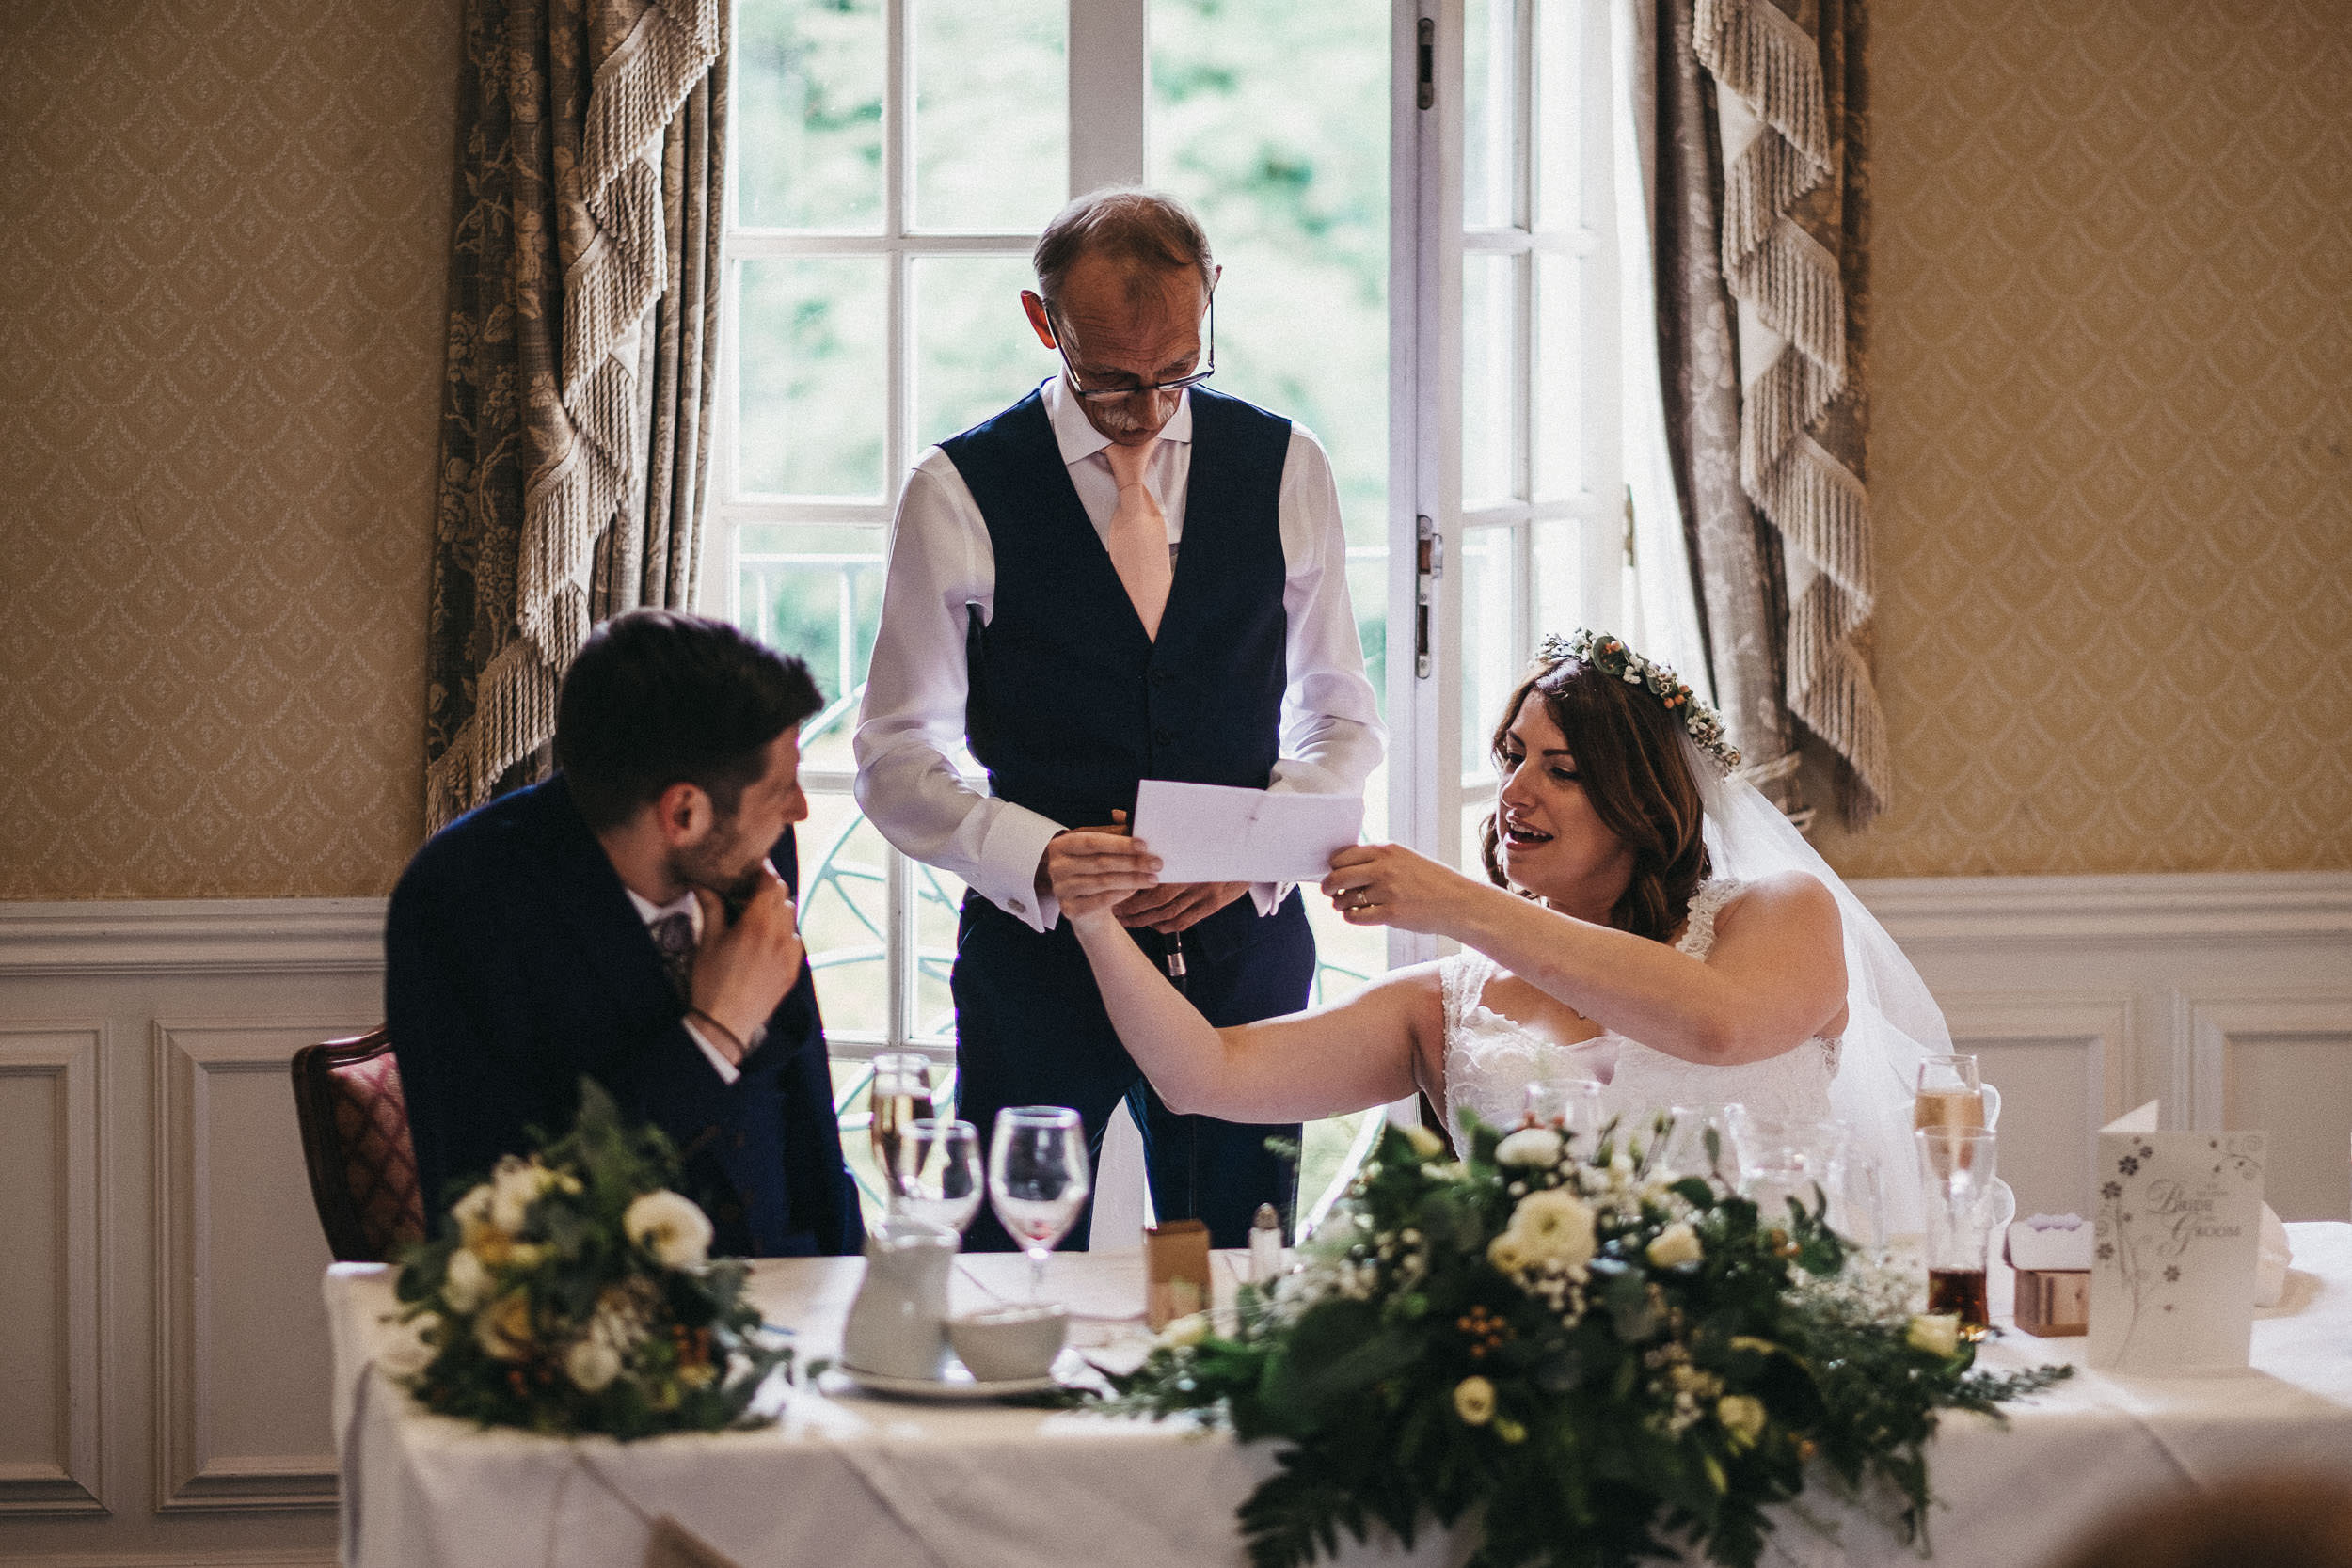 Bride holds up father's speech for him to read